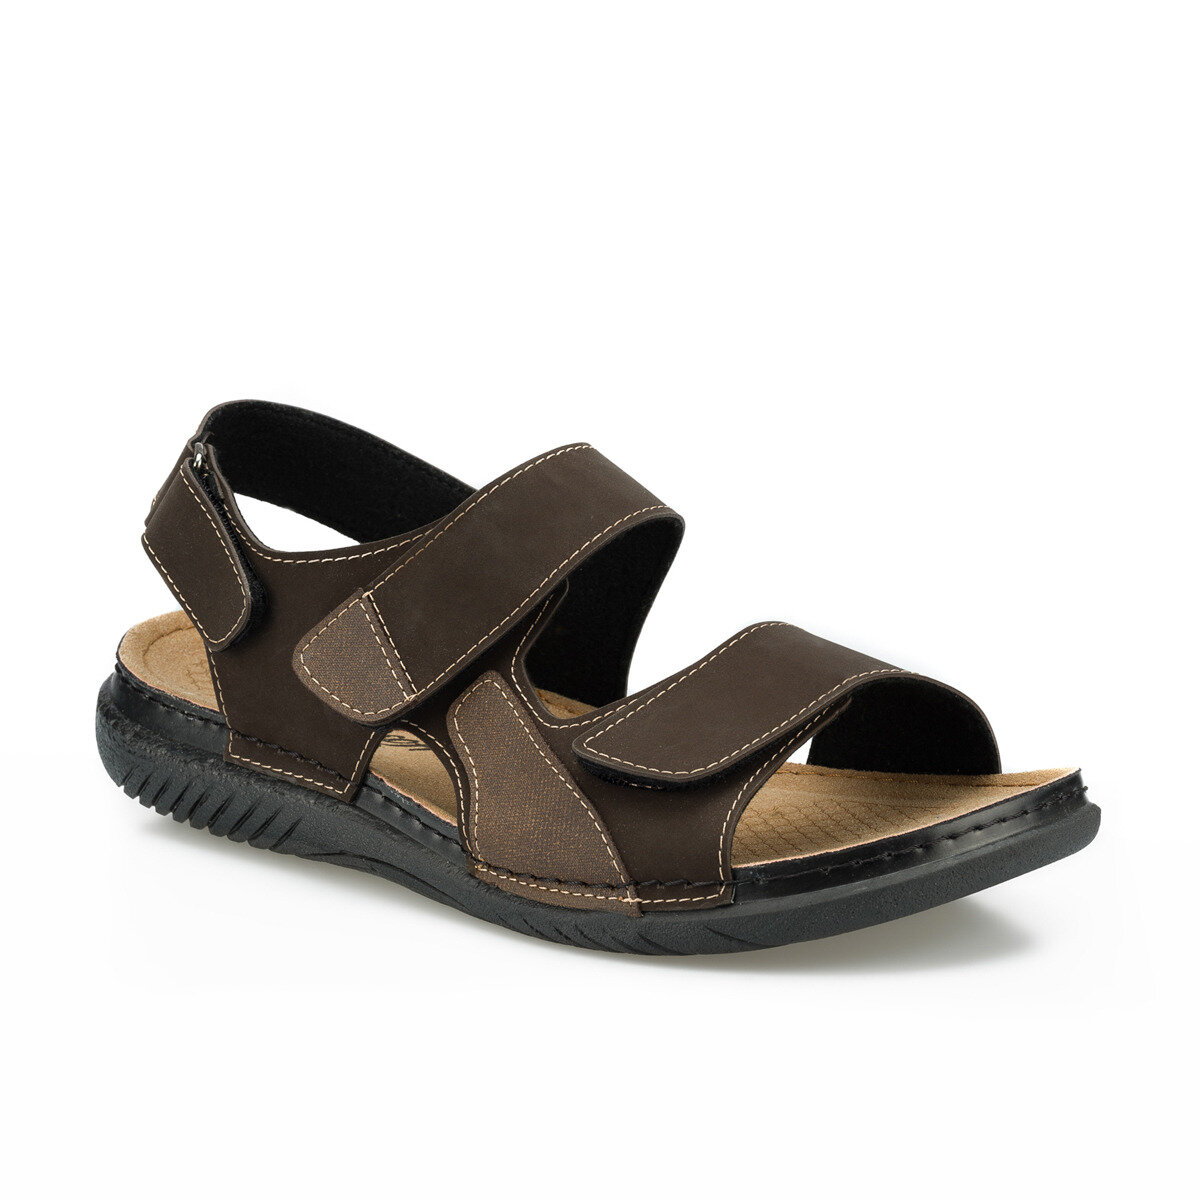 FLO 160254.M Brown Male Sandals Polaris